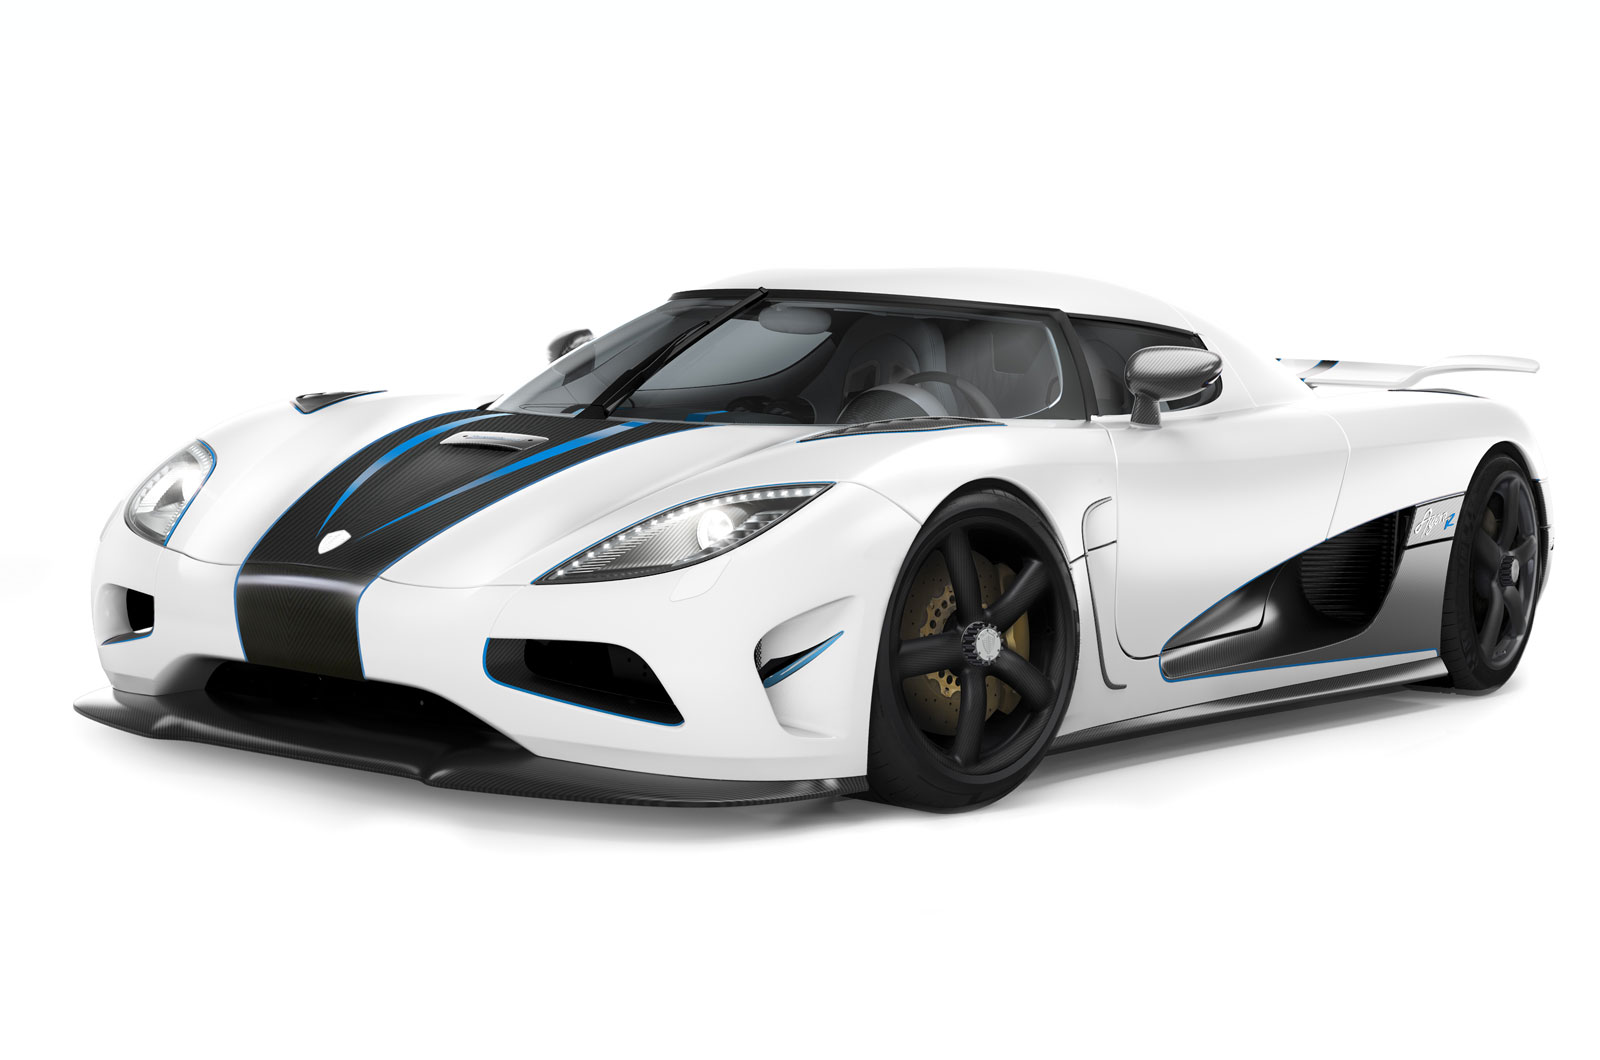 Sport Cars Koenigsegg Agera R hd Wallpapers 2013 1600x1060